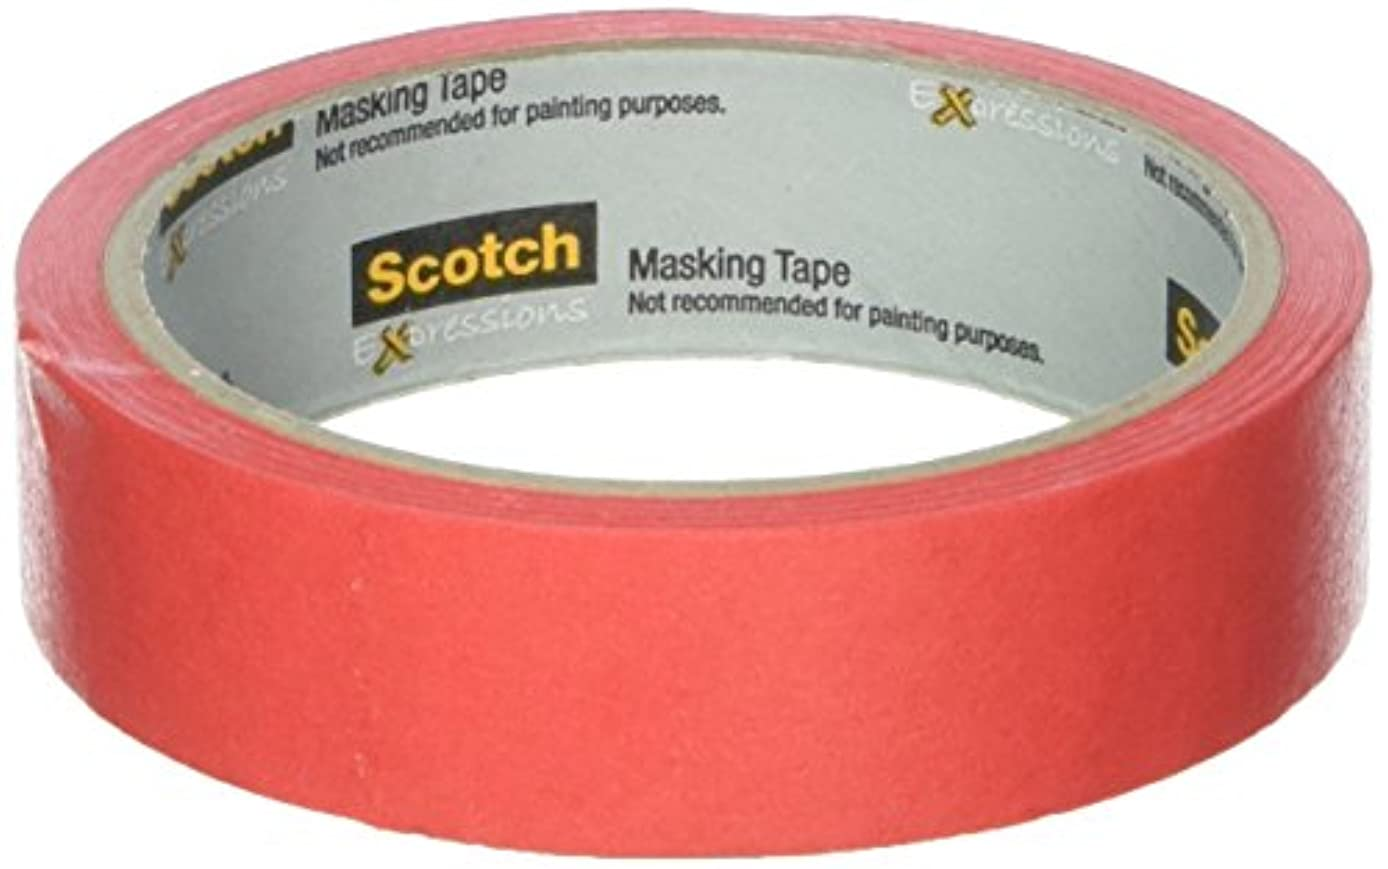 Scotch Expressions Masking Tape, 0,94-Inch x 20-Yards, Primary Red (MMM3437PRD) … (2 Pack)